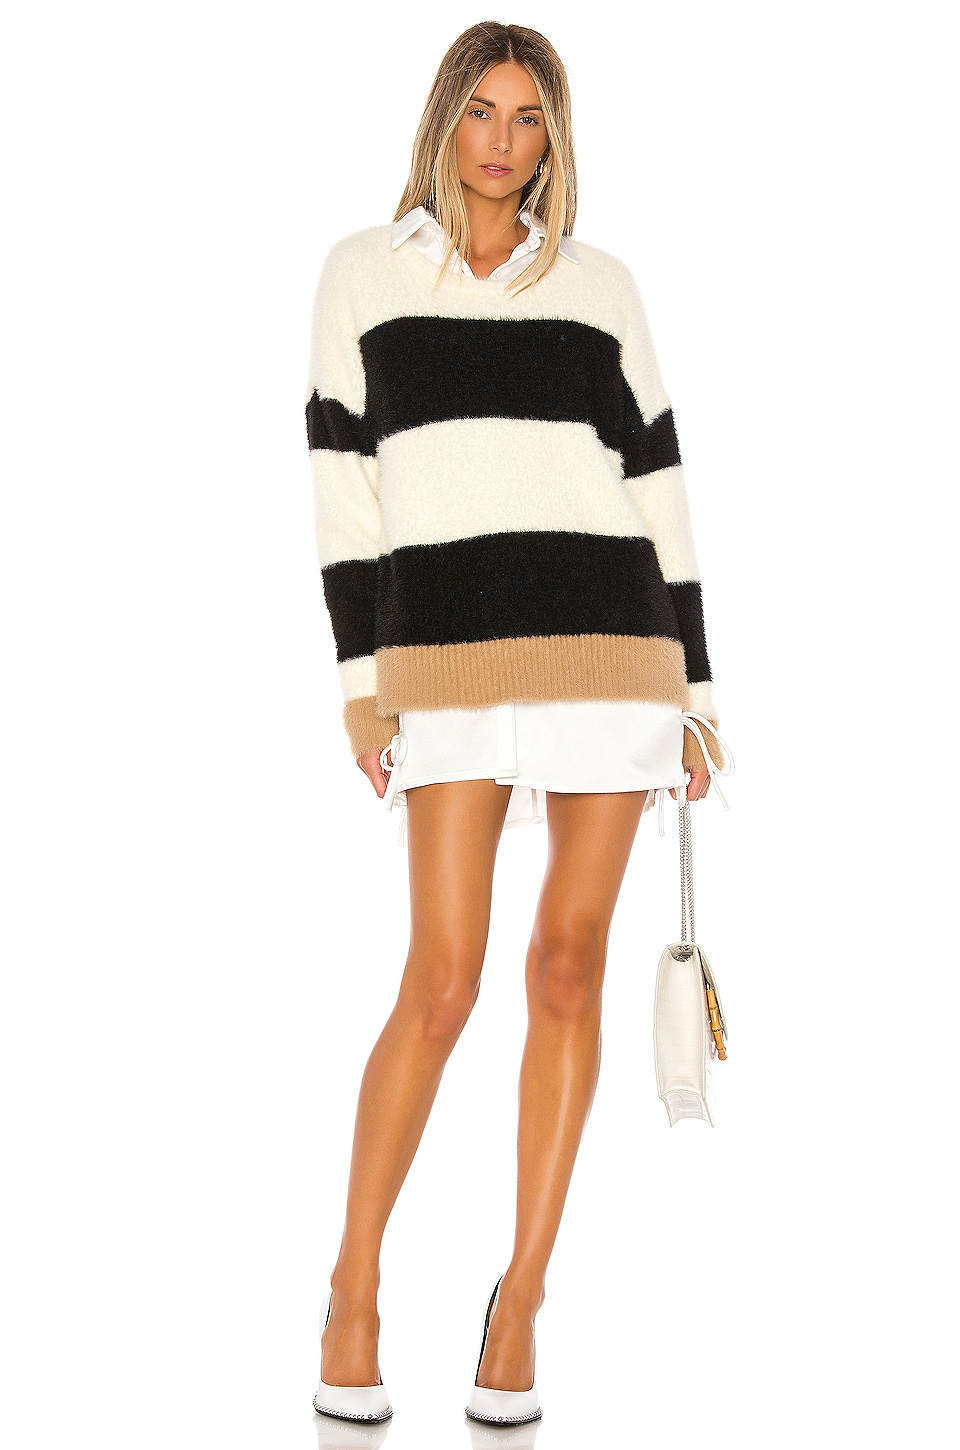 Central Park West Darby Pullover in Ivory & Black